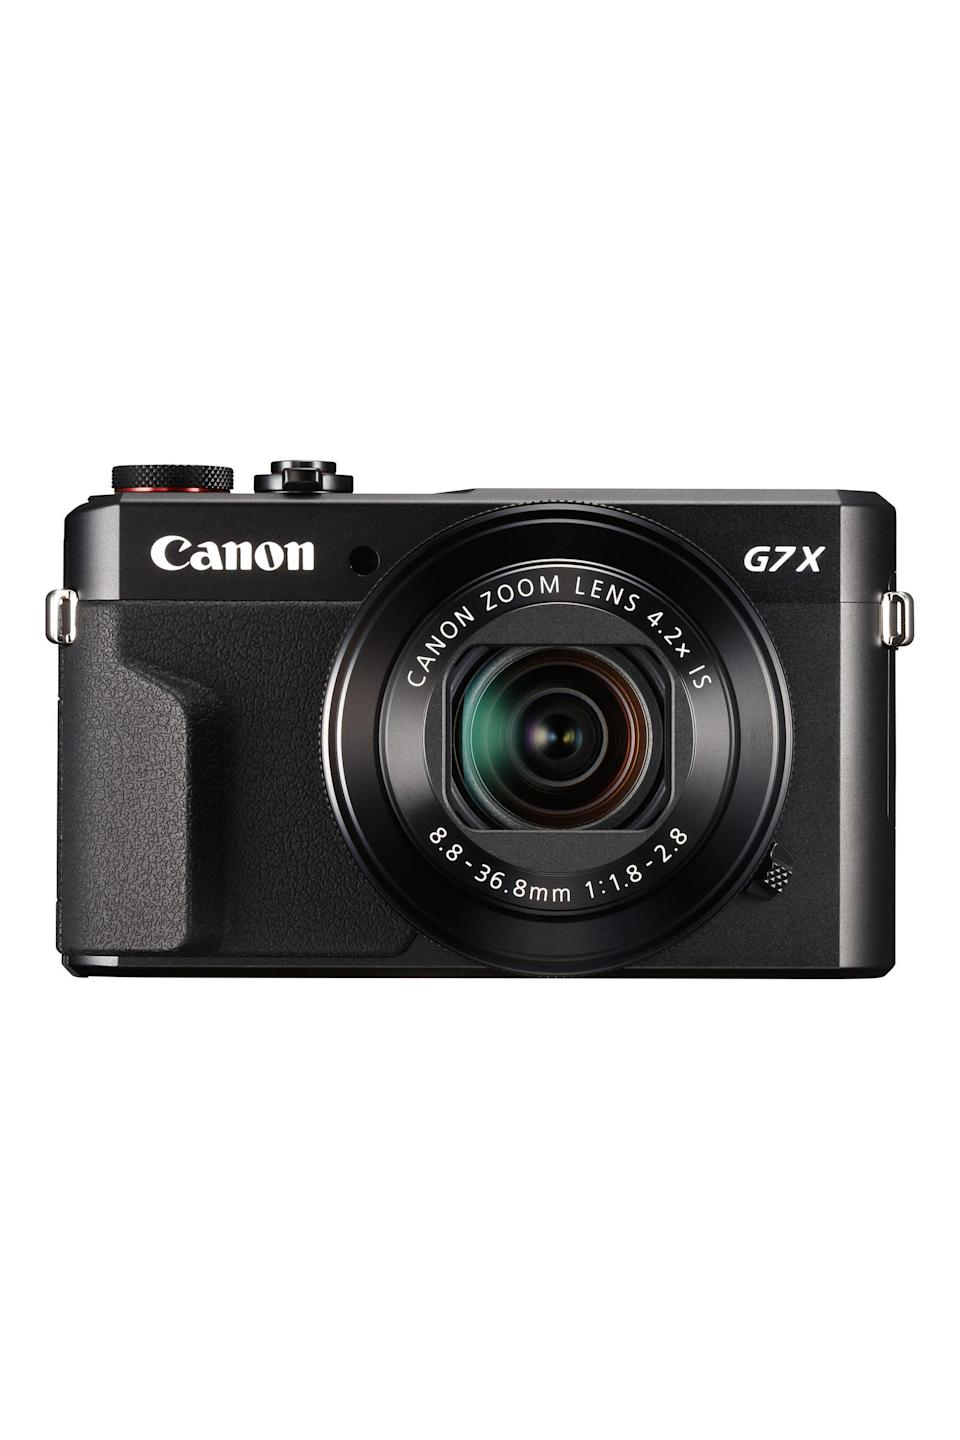 "<p><strong>Canon</strong></p><p>amazon.com</p><p><strong>$629.00</strong></p><p><a href=""https://www.amazon.com/dp/B01BV14OXA?tag=syn-yahoo-20&ascsubtag=%5Bartid%7C10051.g.34208929%5Bsrc%7Cyahoo-us"" rel=""nofollow noopener"" target=""_blank"" data-ylk=""slk:Shop Now"" class=""link rapid-noclick-resp"">Shop Now</a></p><p>For your future YouTube vlogger. </p>"